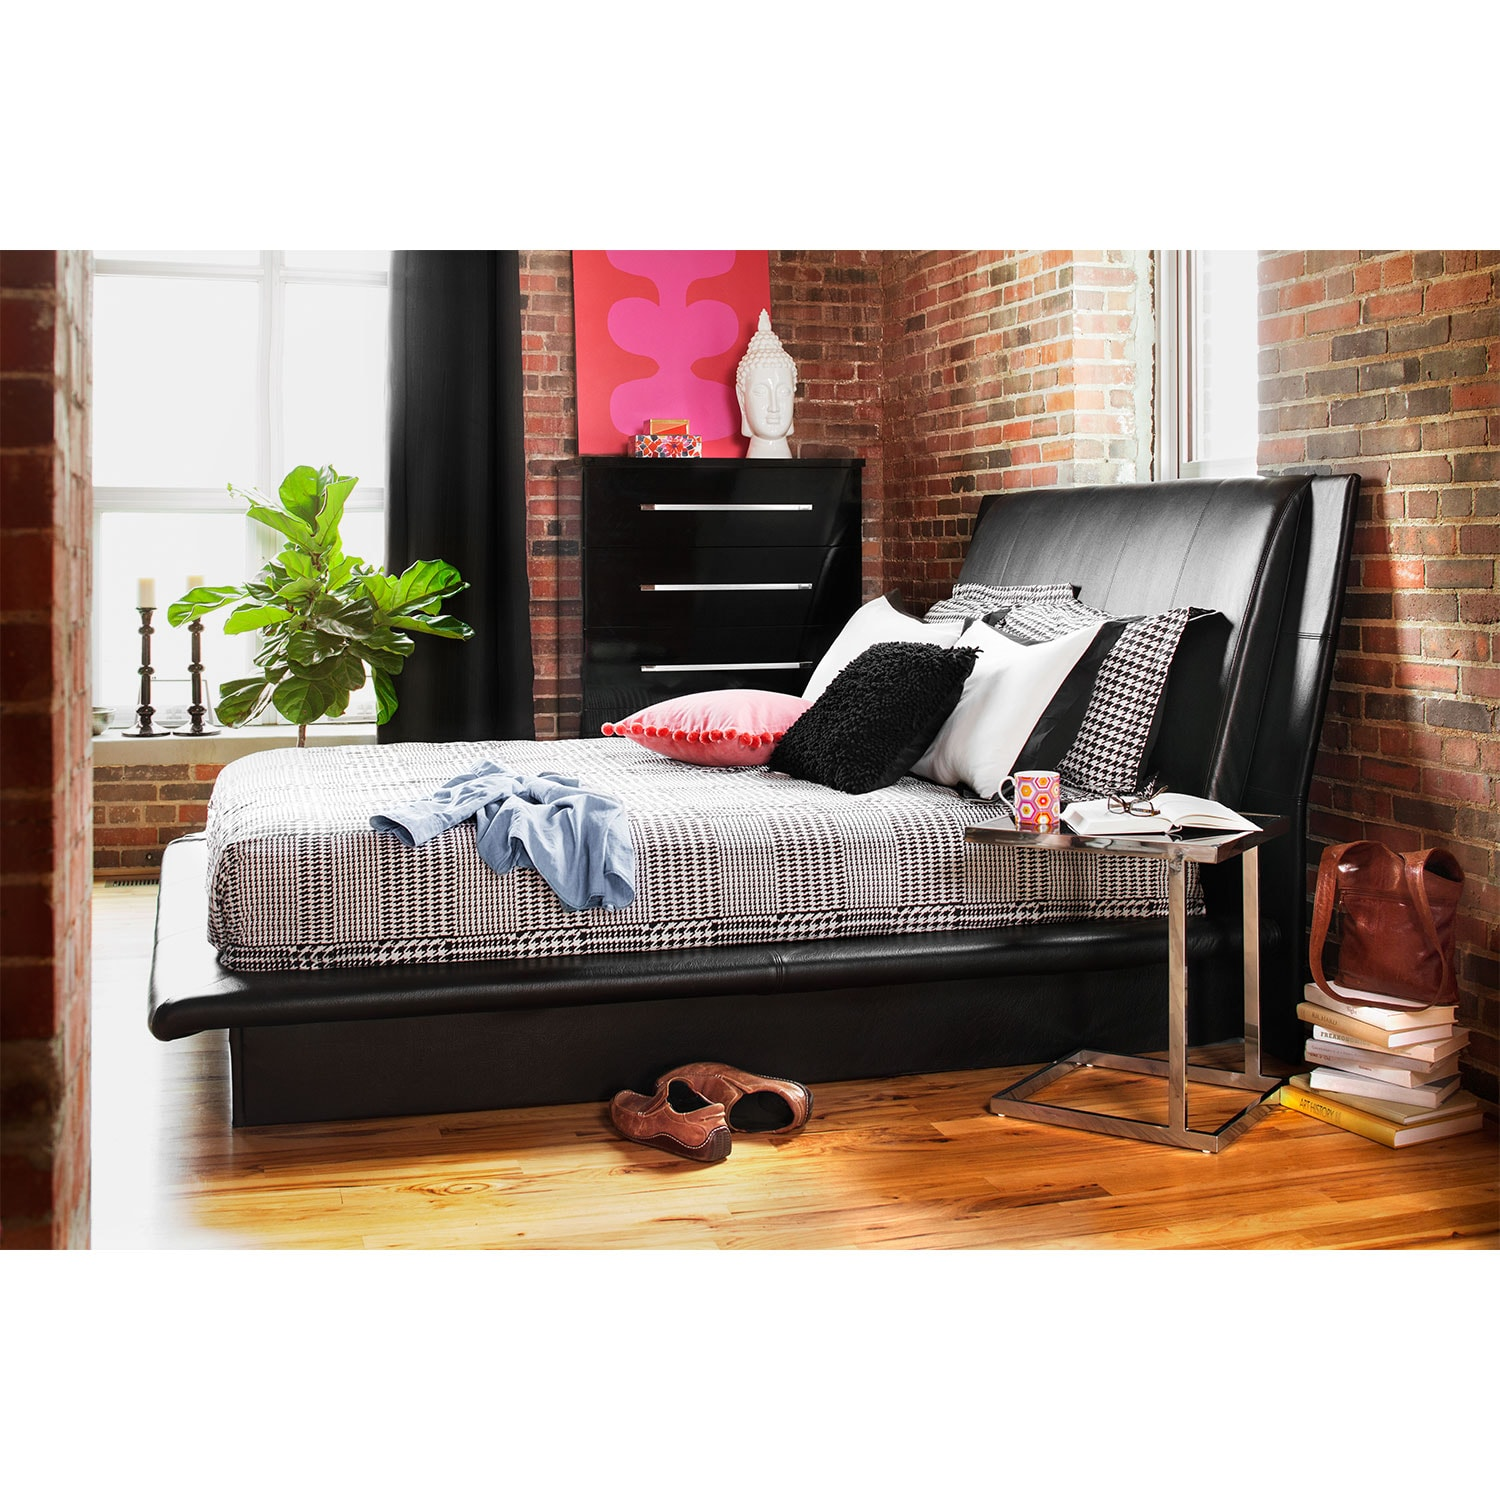 dimora queen upholstered bed - black | value city furniture and